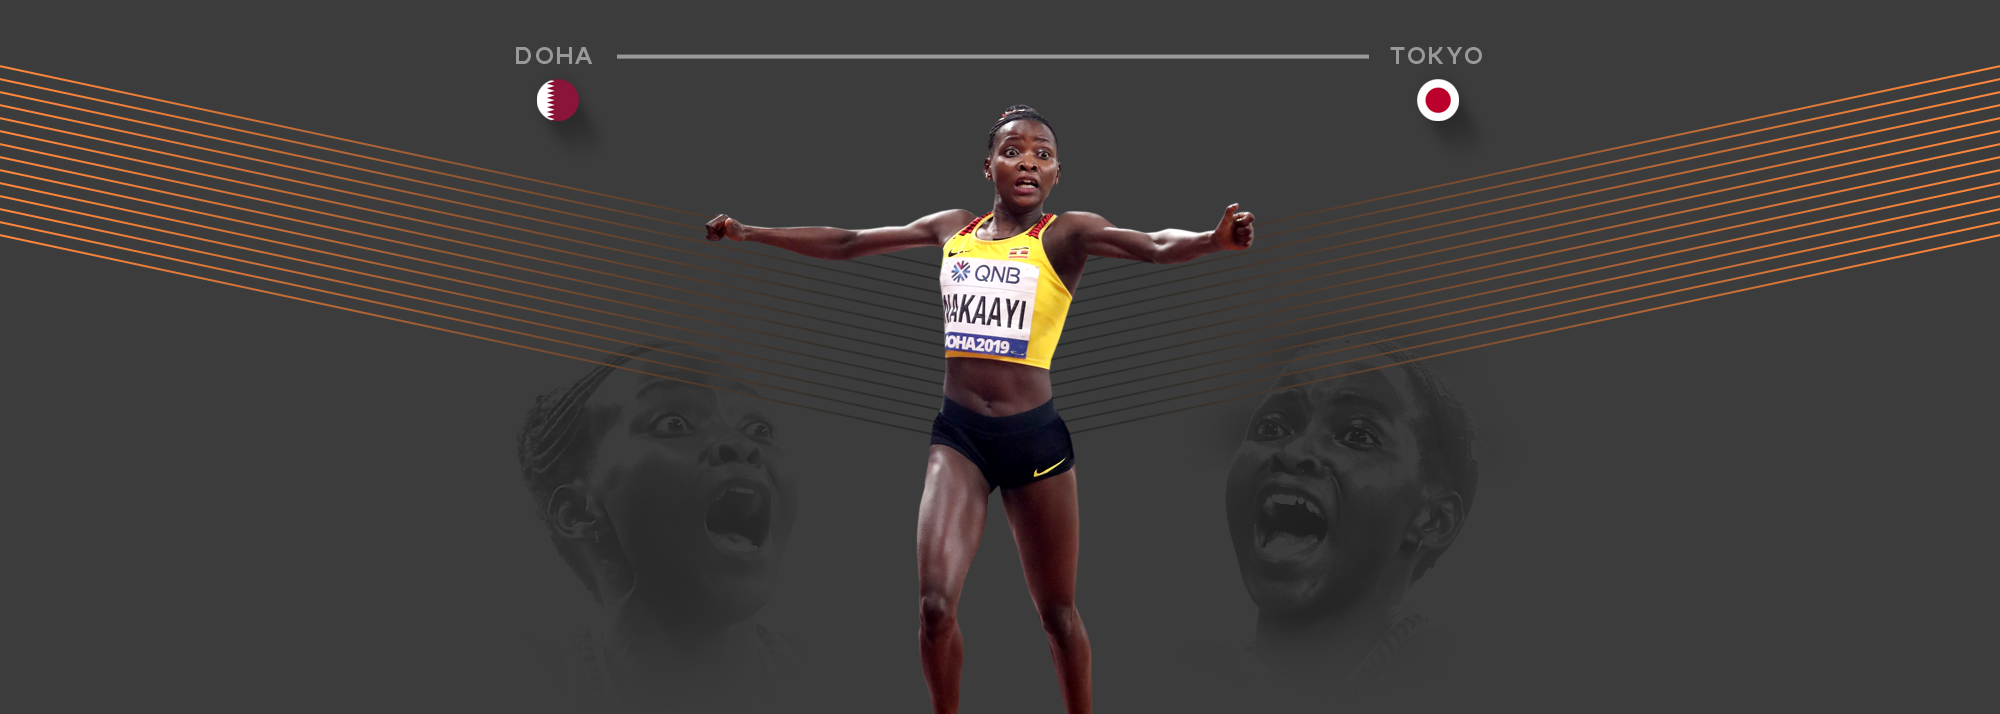 In the latest in our mini-series, we look at world 800m champion Halimah Nakaayi's journey to the Tokyo Olympics.